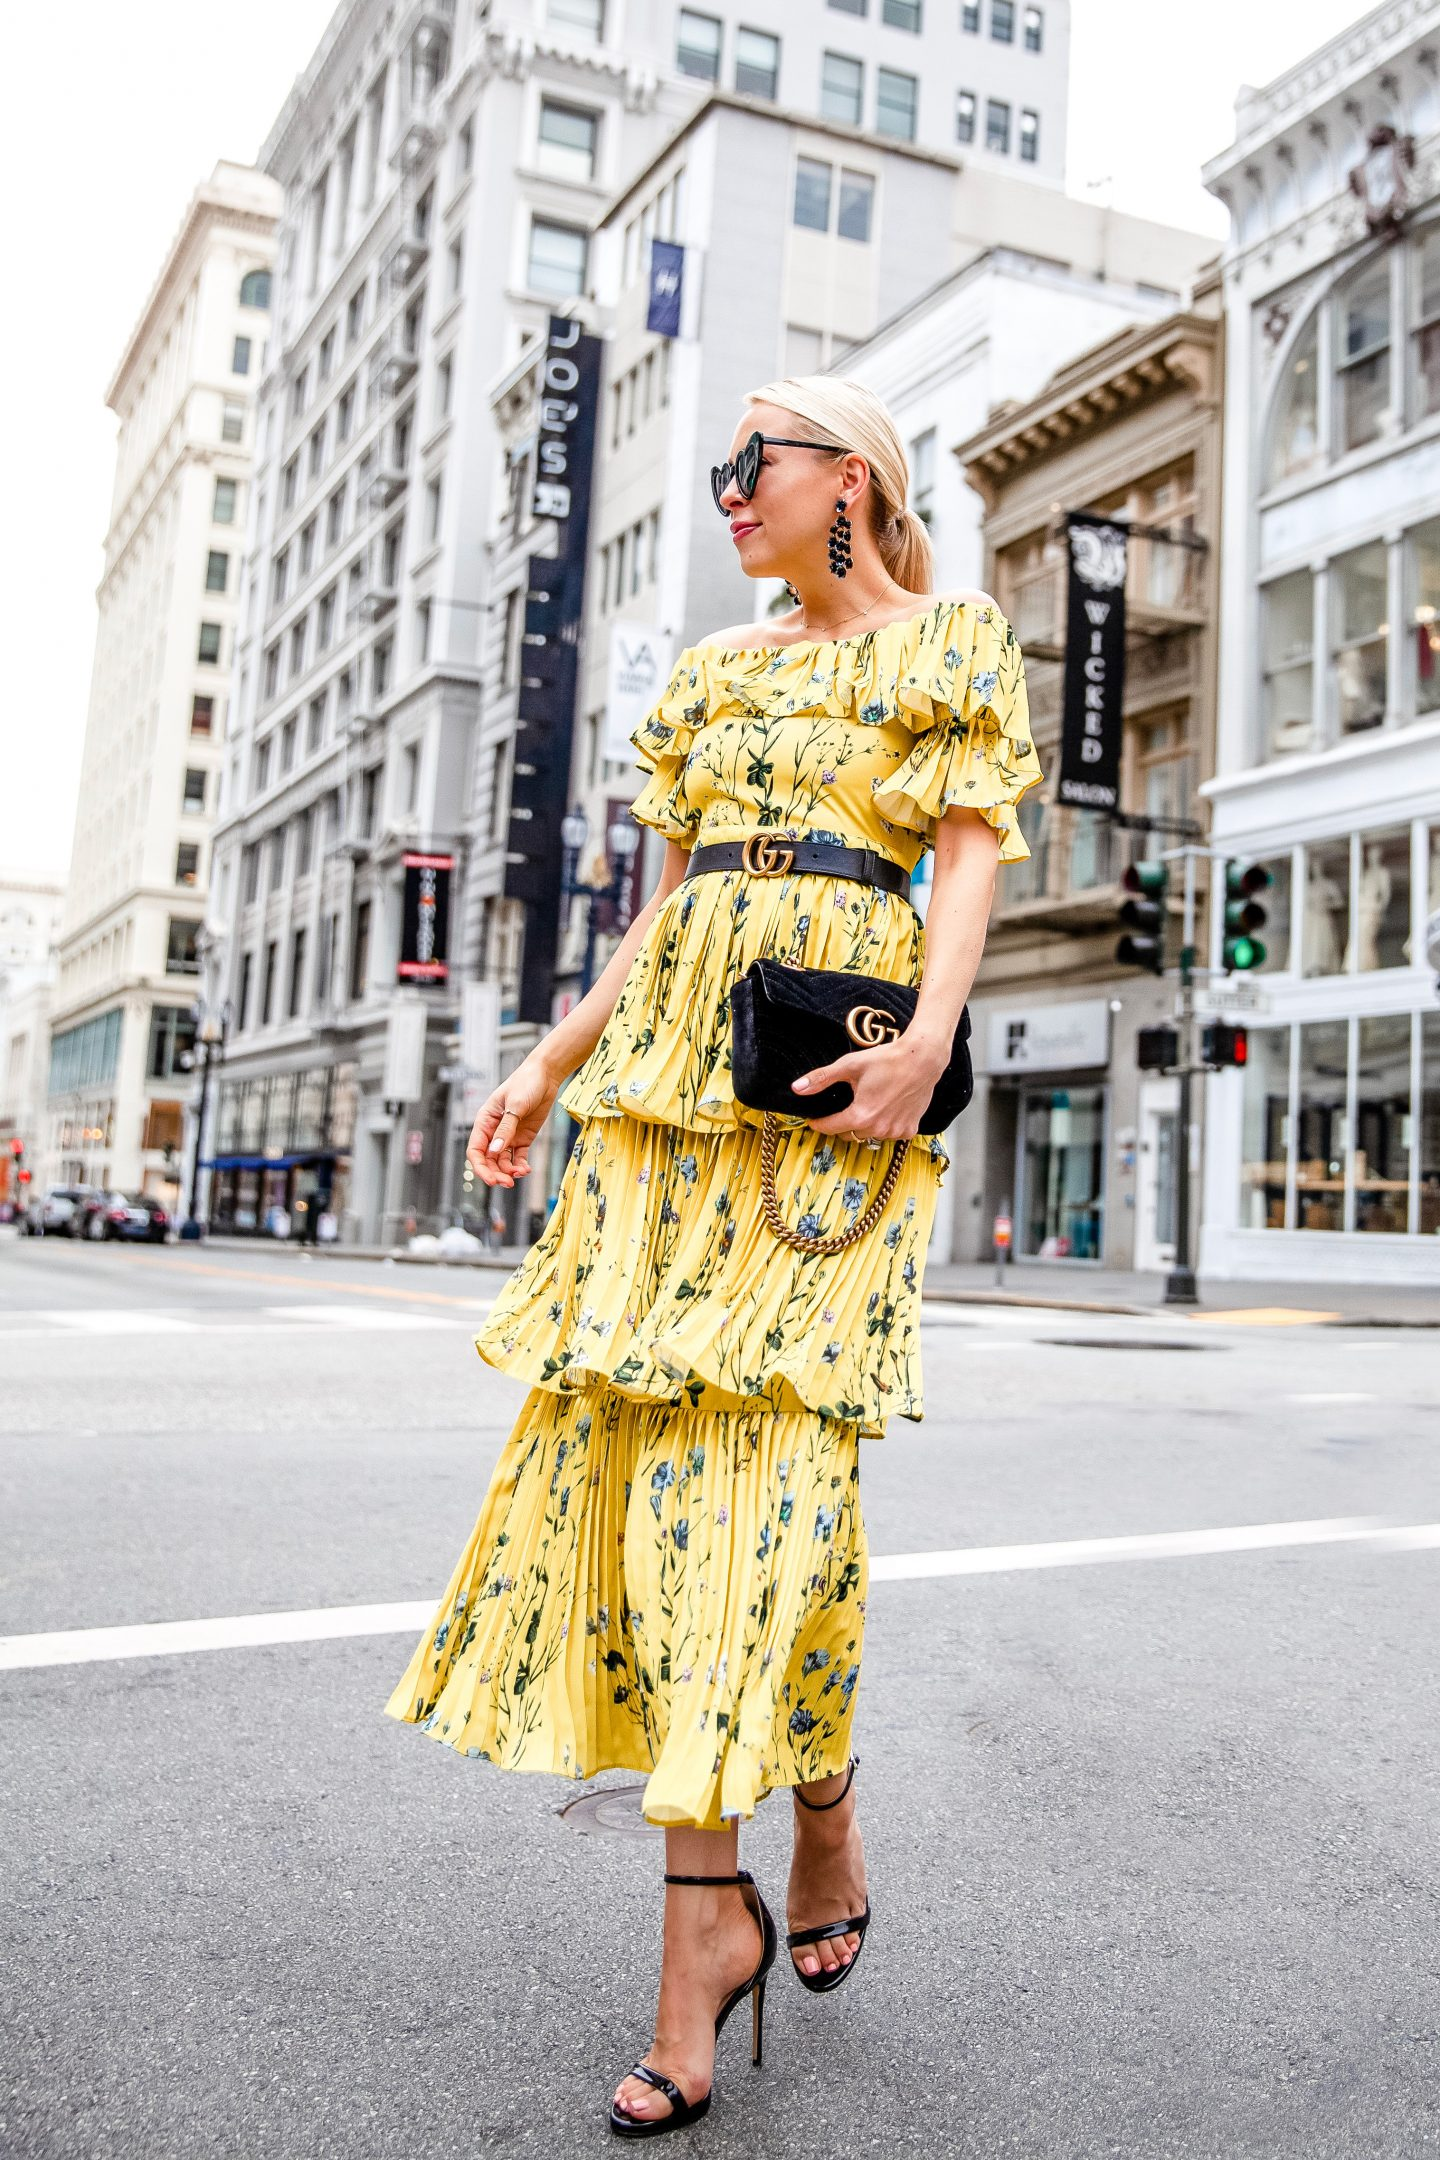 Aqua One spring dress styled two ways featured by top San Francisco fashion blogger Lombard and Fifth